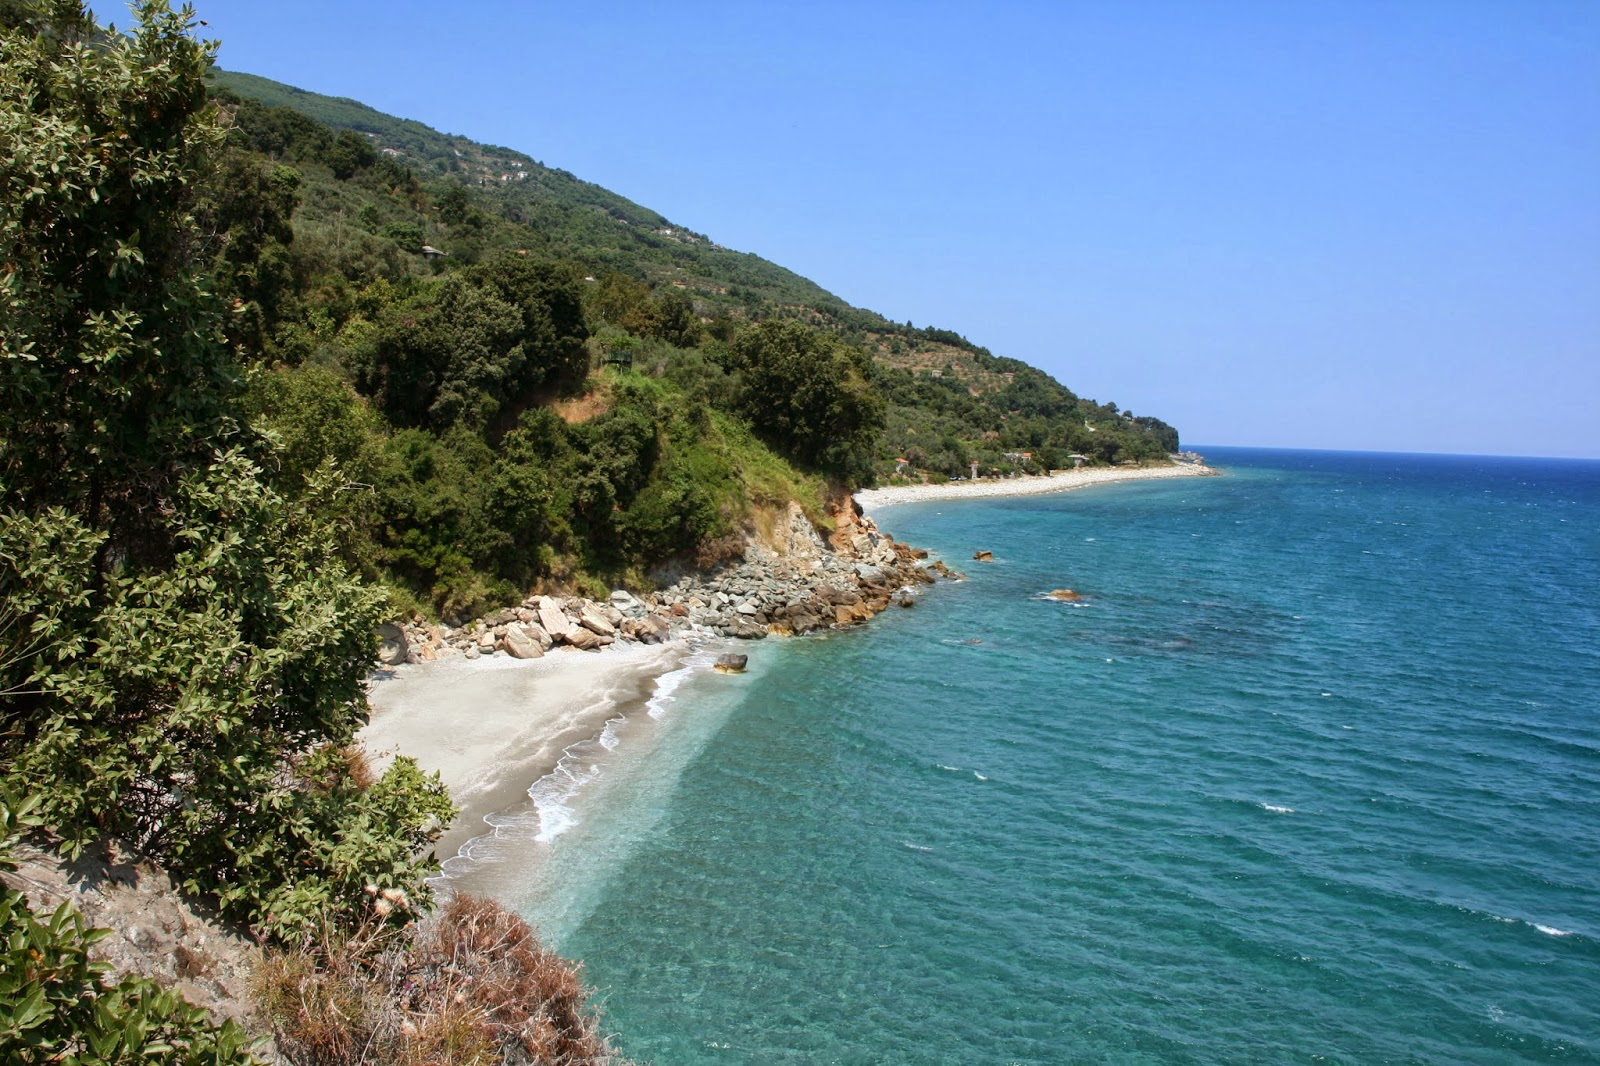 Pelion Greece  City pictures : To See the Seven Continents: Pelion Peninsula, Greece